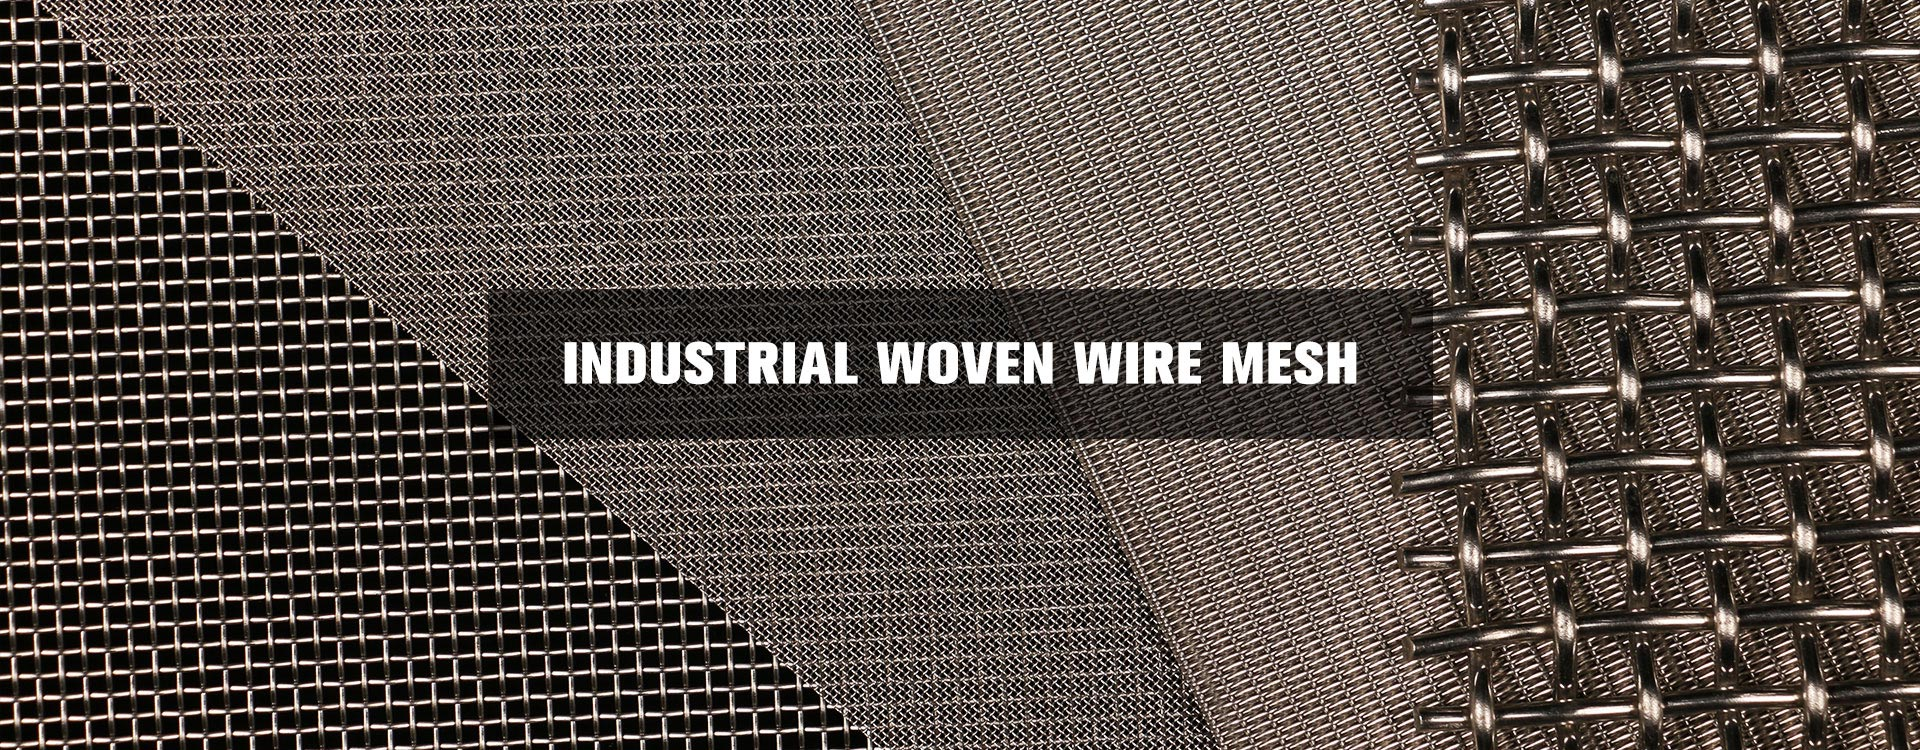 Anping TianHui Wire Mesh Products Co., Ltd Main Image